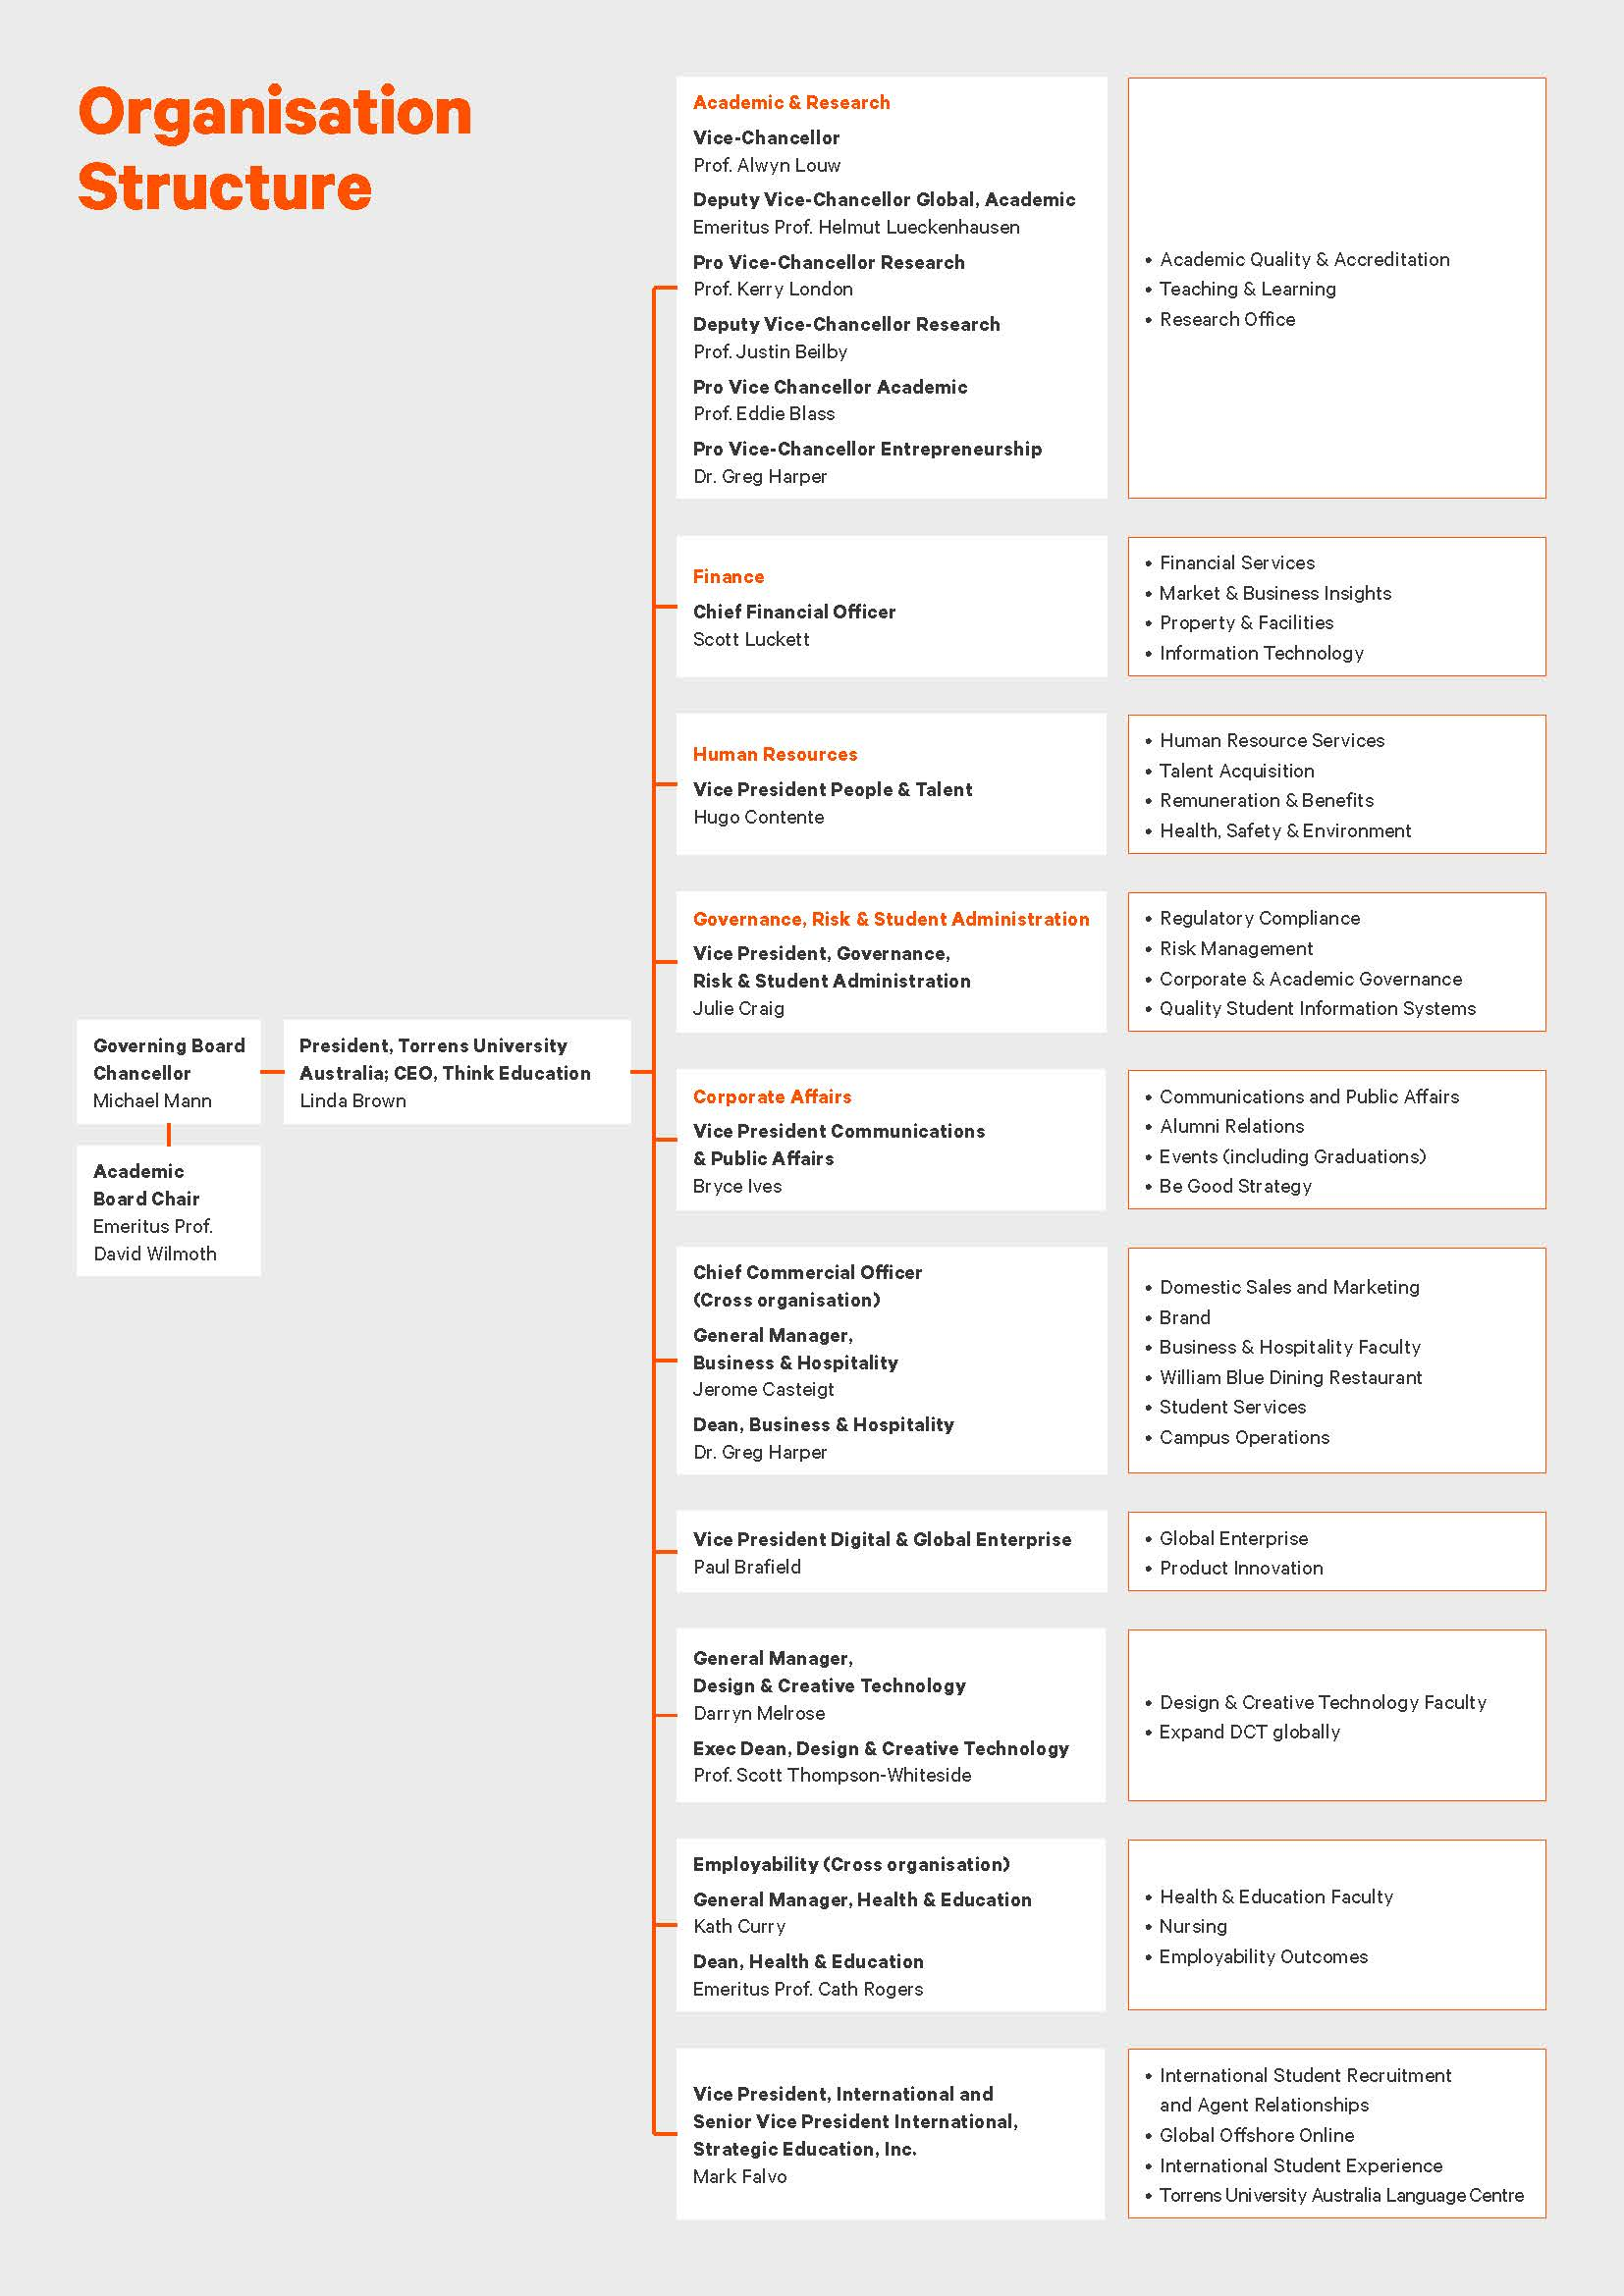 Governance and Leadership | Organisational Structure Chart | Torrens University